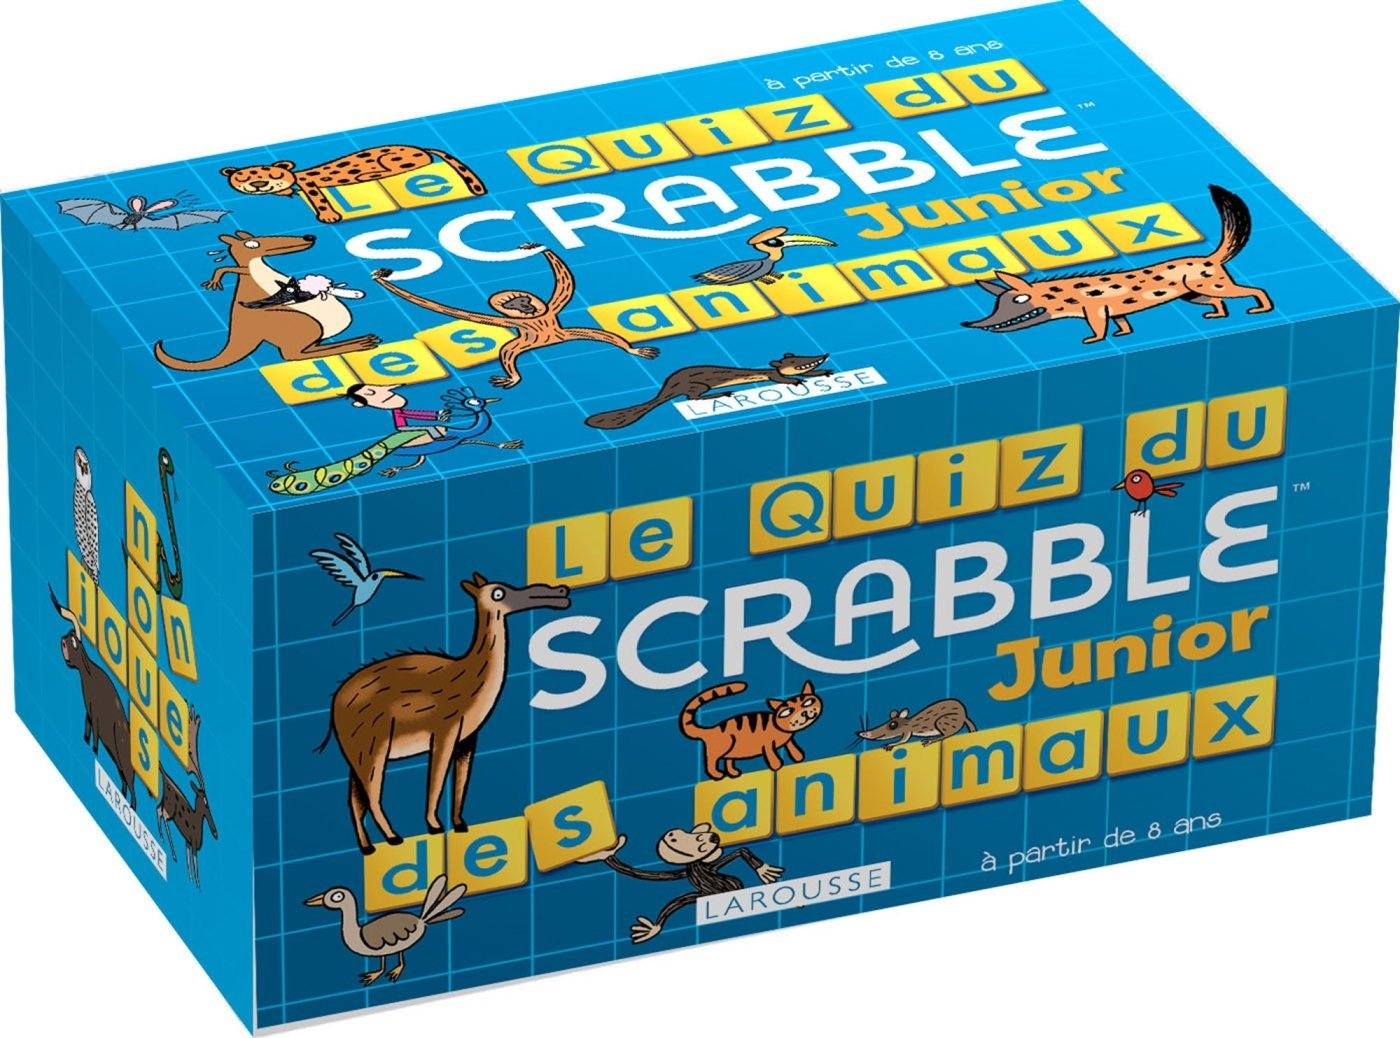 Le Quiz Scrabble Junior des animaux (Boîtes Quiz): Amazon.es: Meyer, Aurore: Libros en idiomas extranjeros